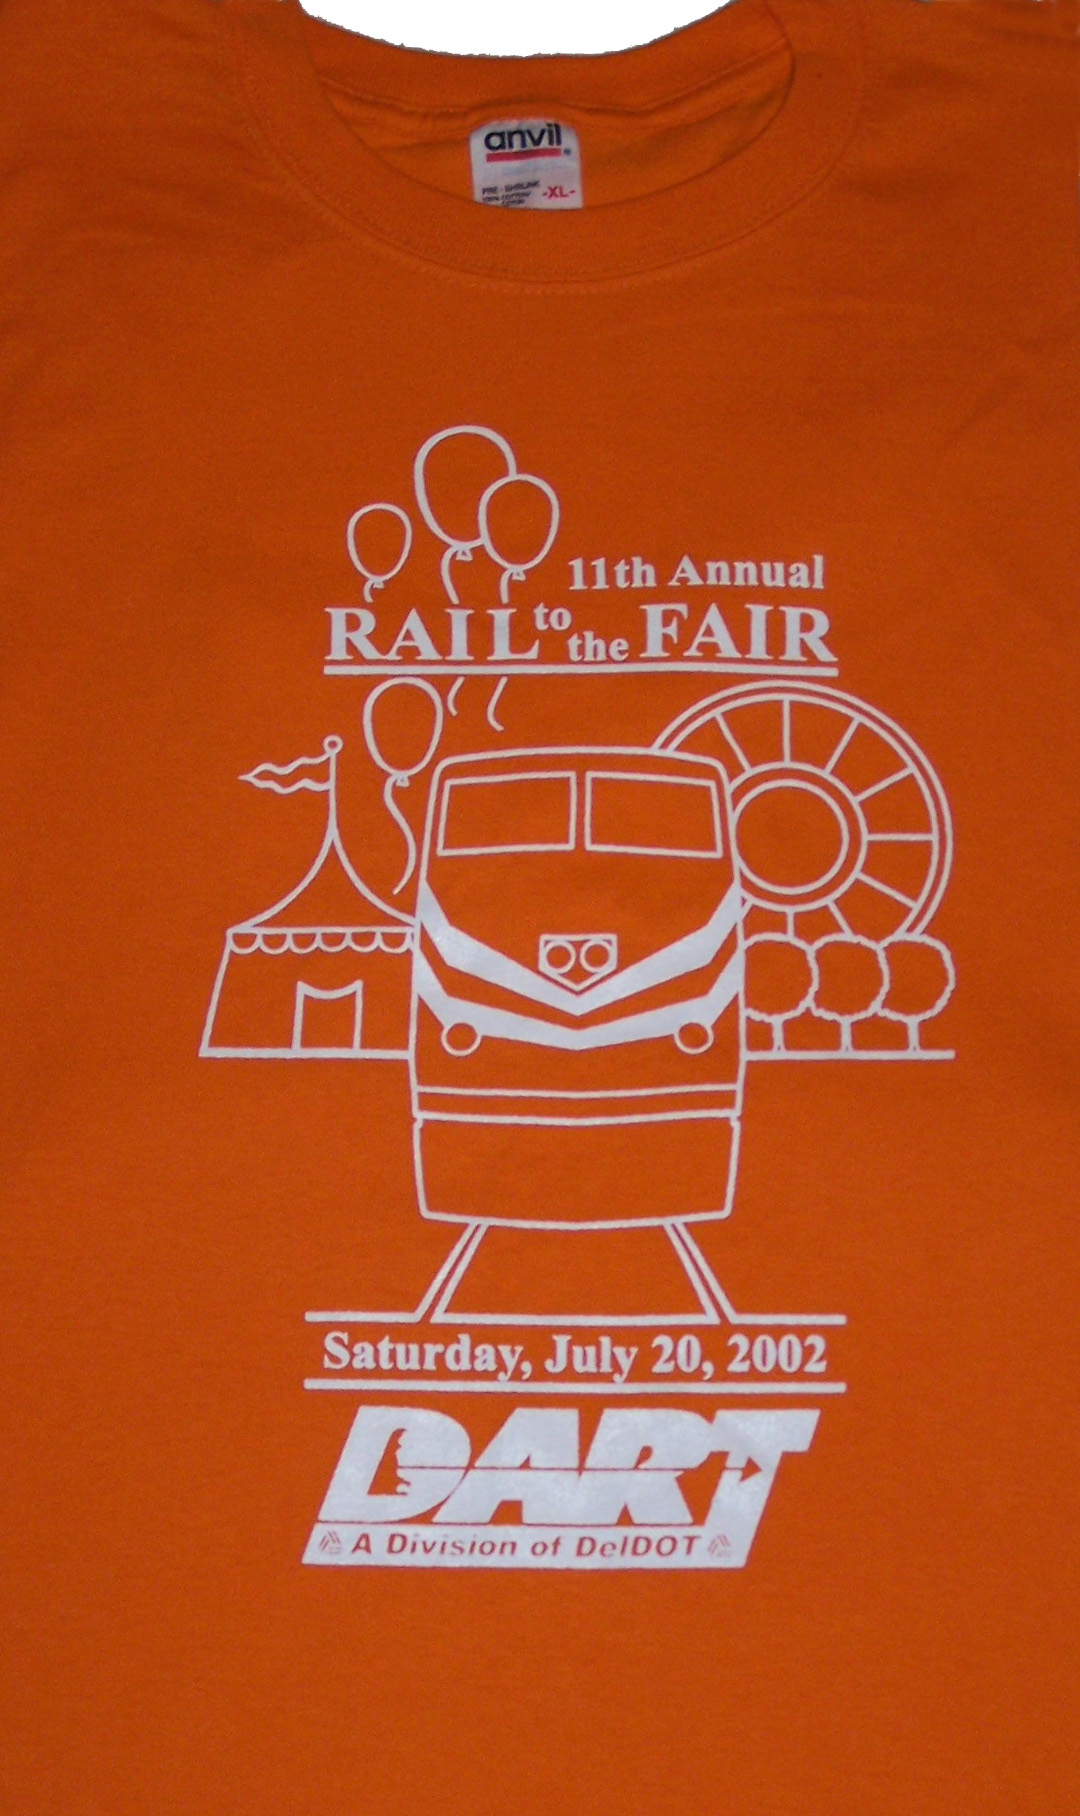 2002 Rail to the Fair tee shirt